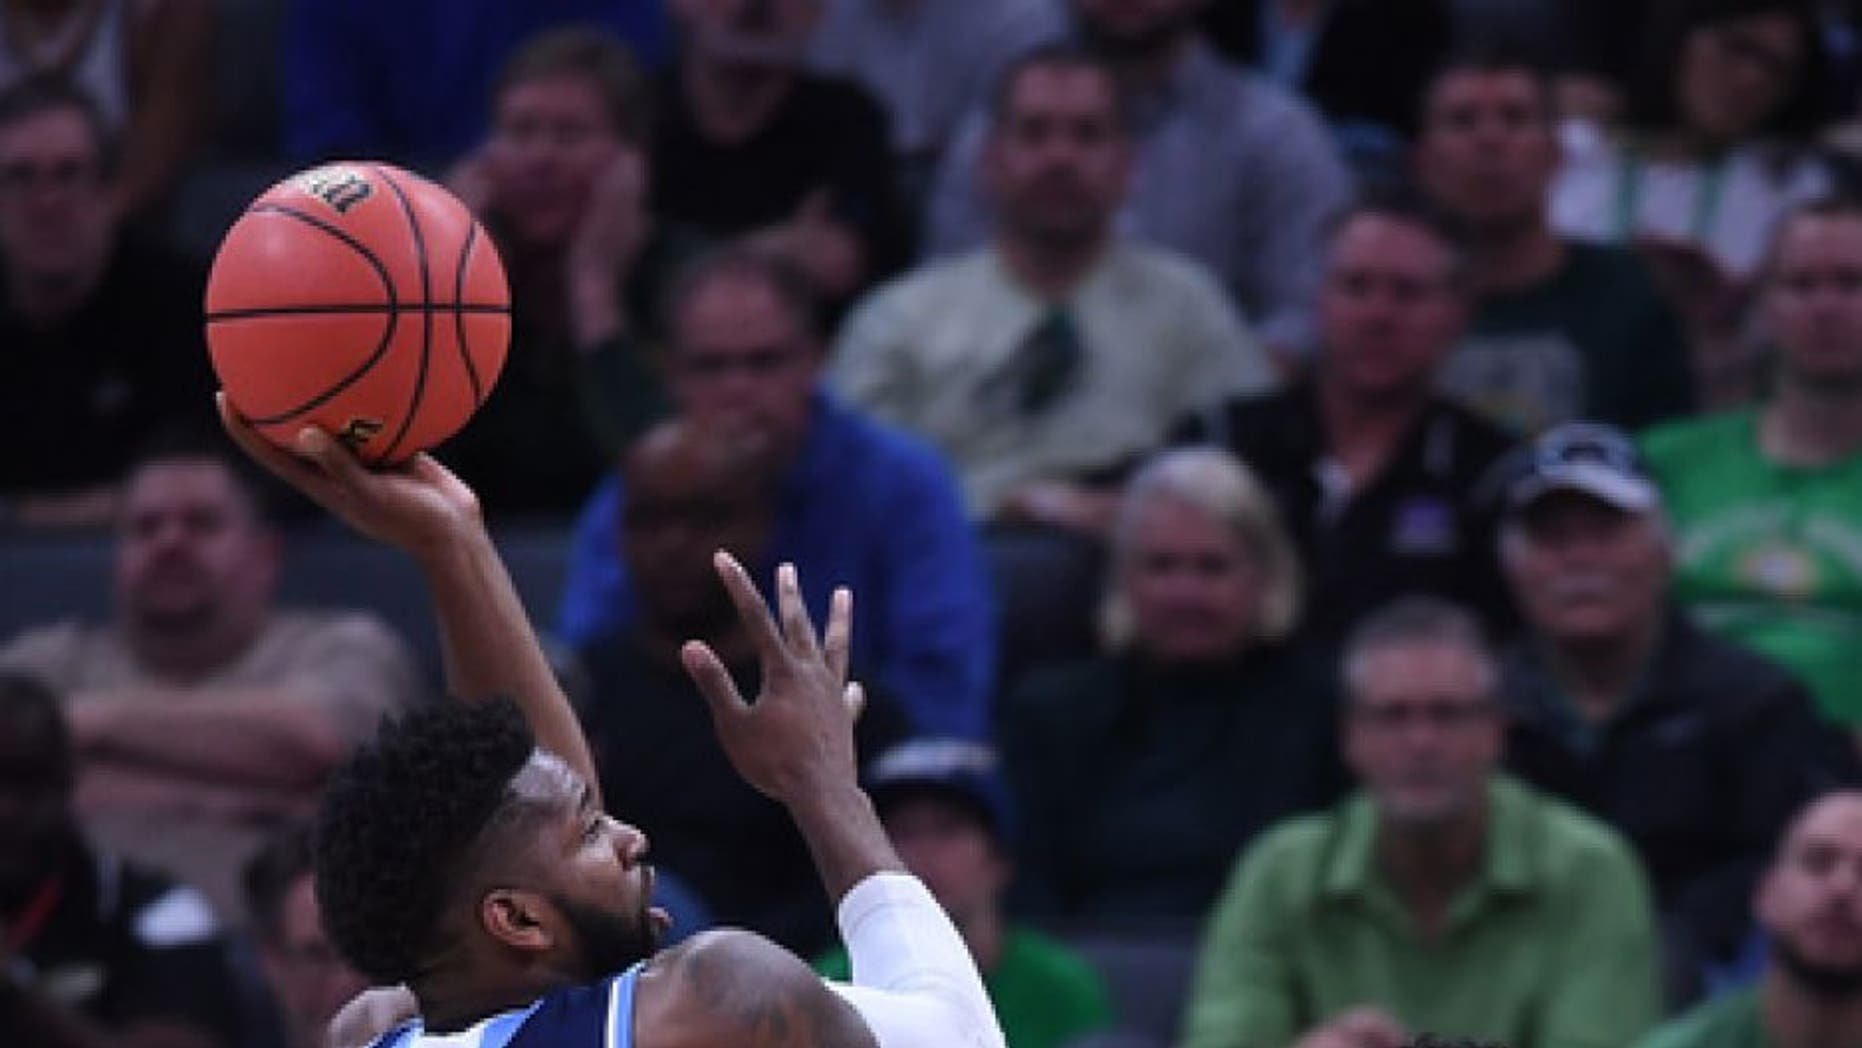 SACRAMENTO, CA - MARCH 17: Hassan Martin #12 of the Rhode Island Rams attempts a shot against the Creighton Bluejays during the first round of the 2017 NCAA Men's Basketball Tournament at Golden 1 Center on March 17, 2017 in Sacramento, California. (Photo by Thearon W. Henderson/Getty Images)